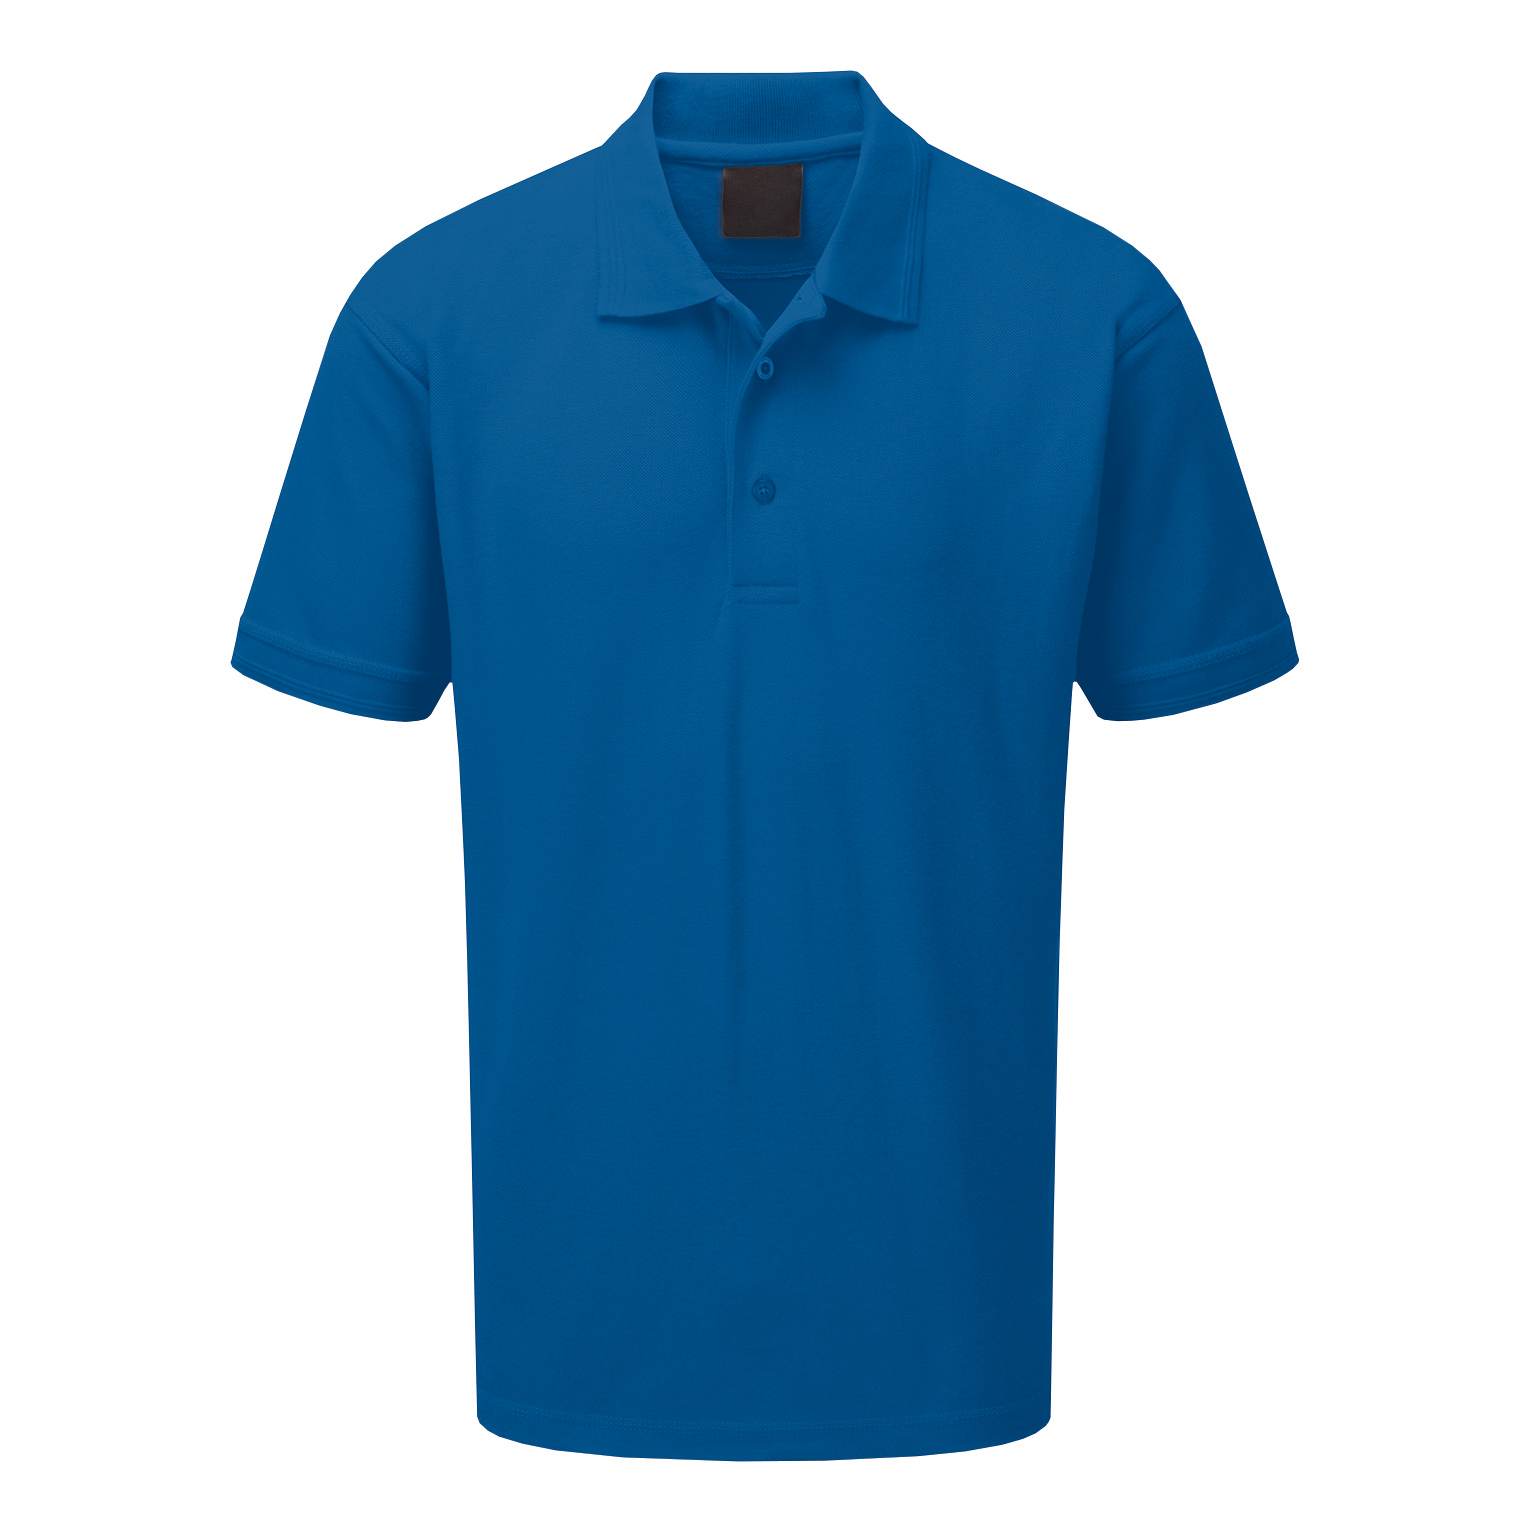 Premium Polo Shirt Triple Button 220gsm Polycotton Small Royal Blue Ref CLPKSRS *Approx 3 Day Leadtime*